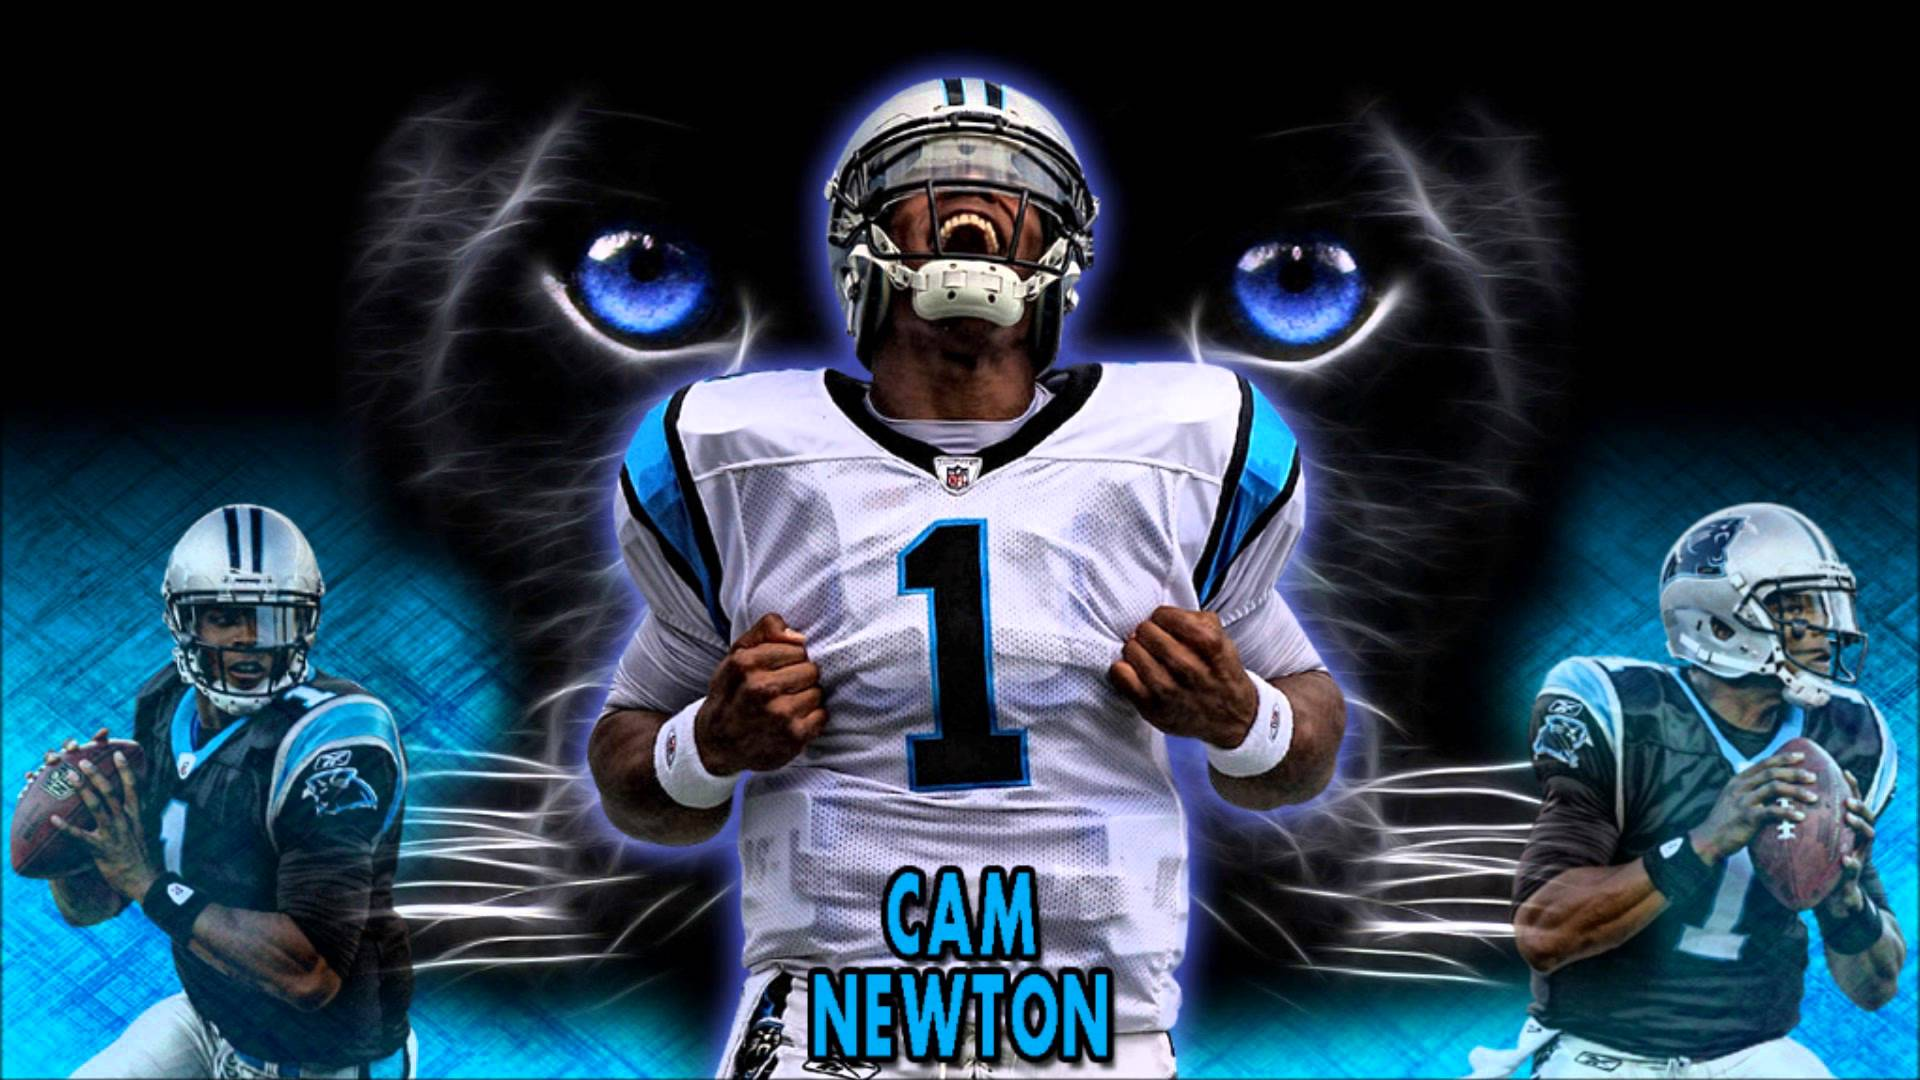 Cam Newton Patriots Wallpaper PC